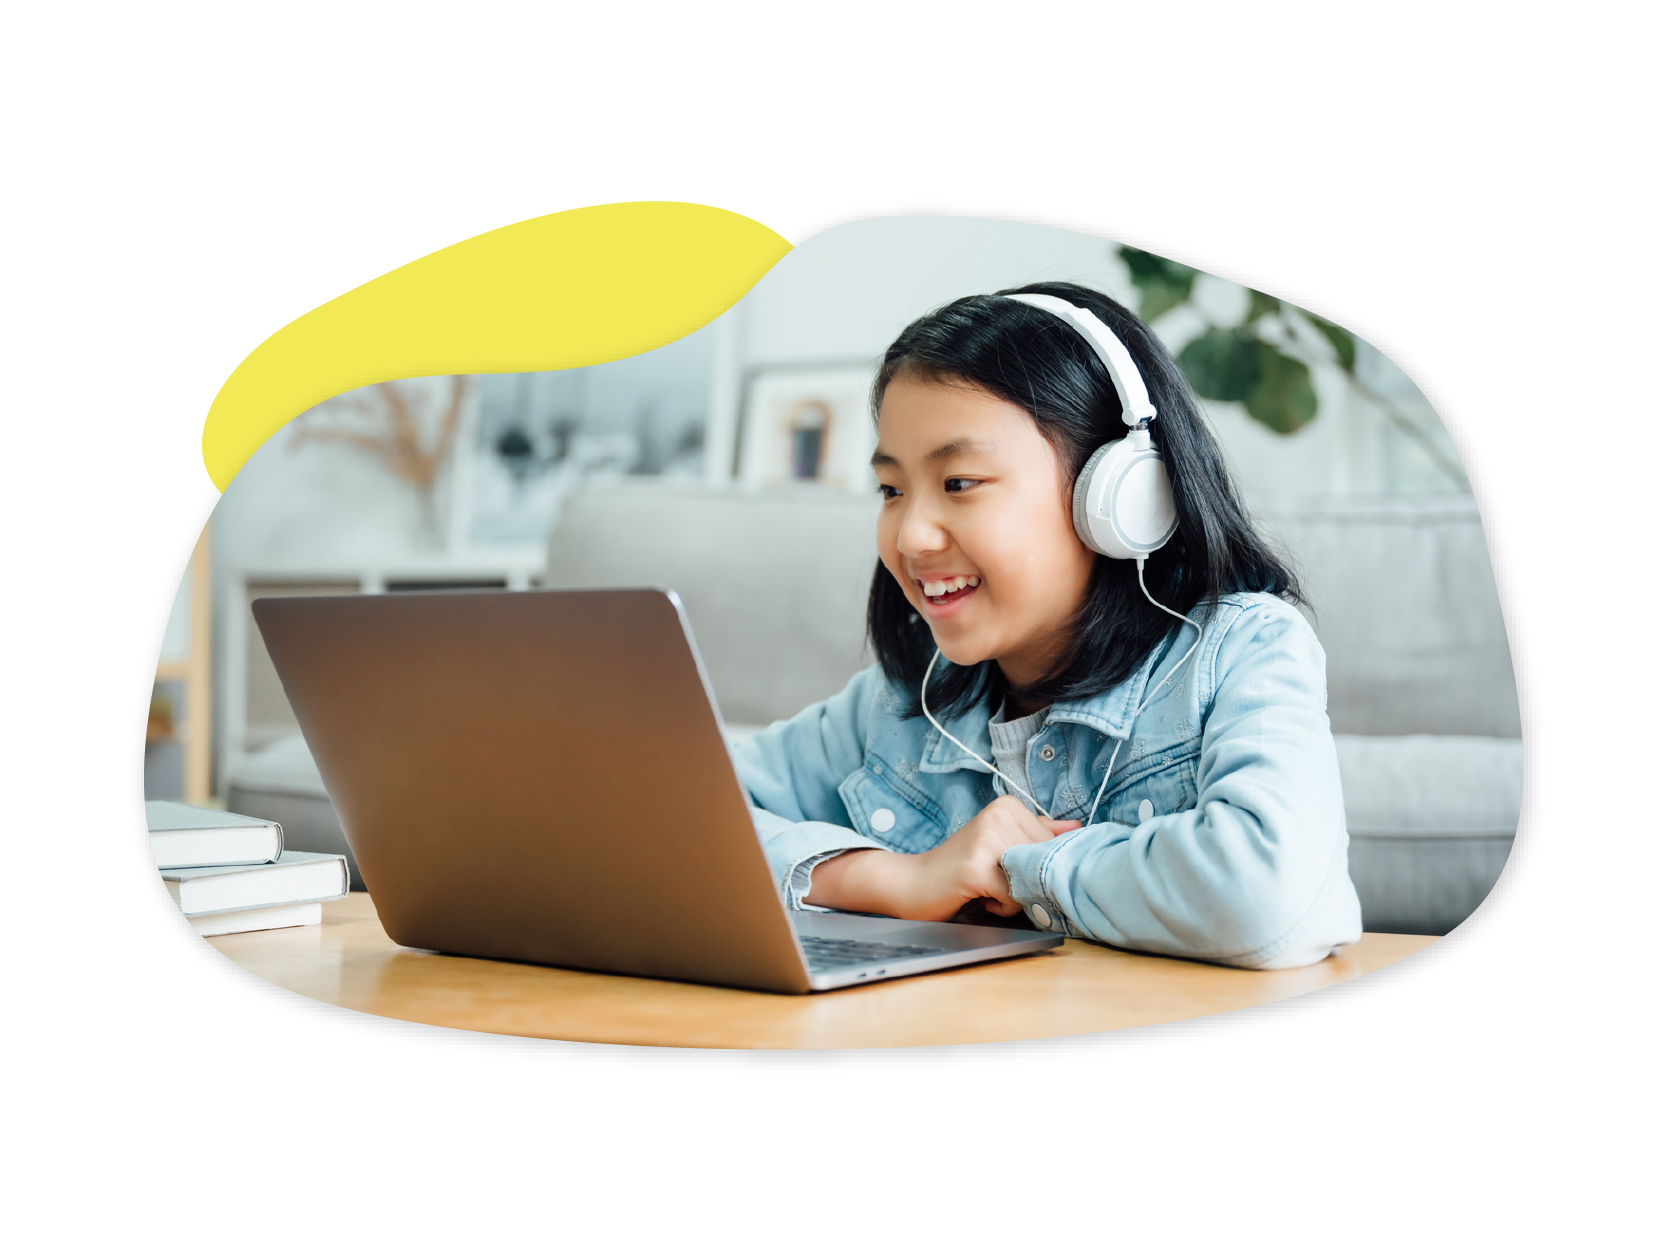 An Asian girl sits in front of a laptop while wearing headphones